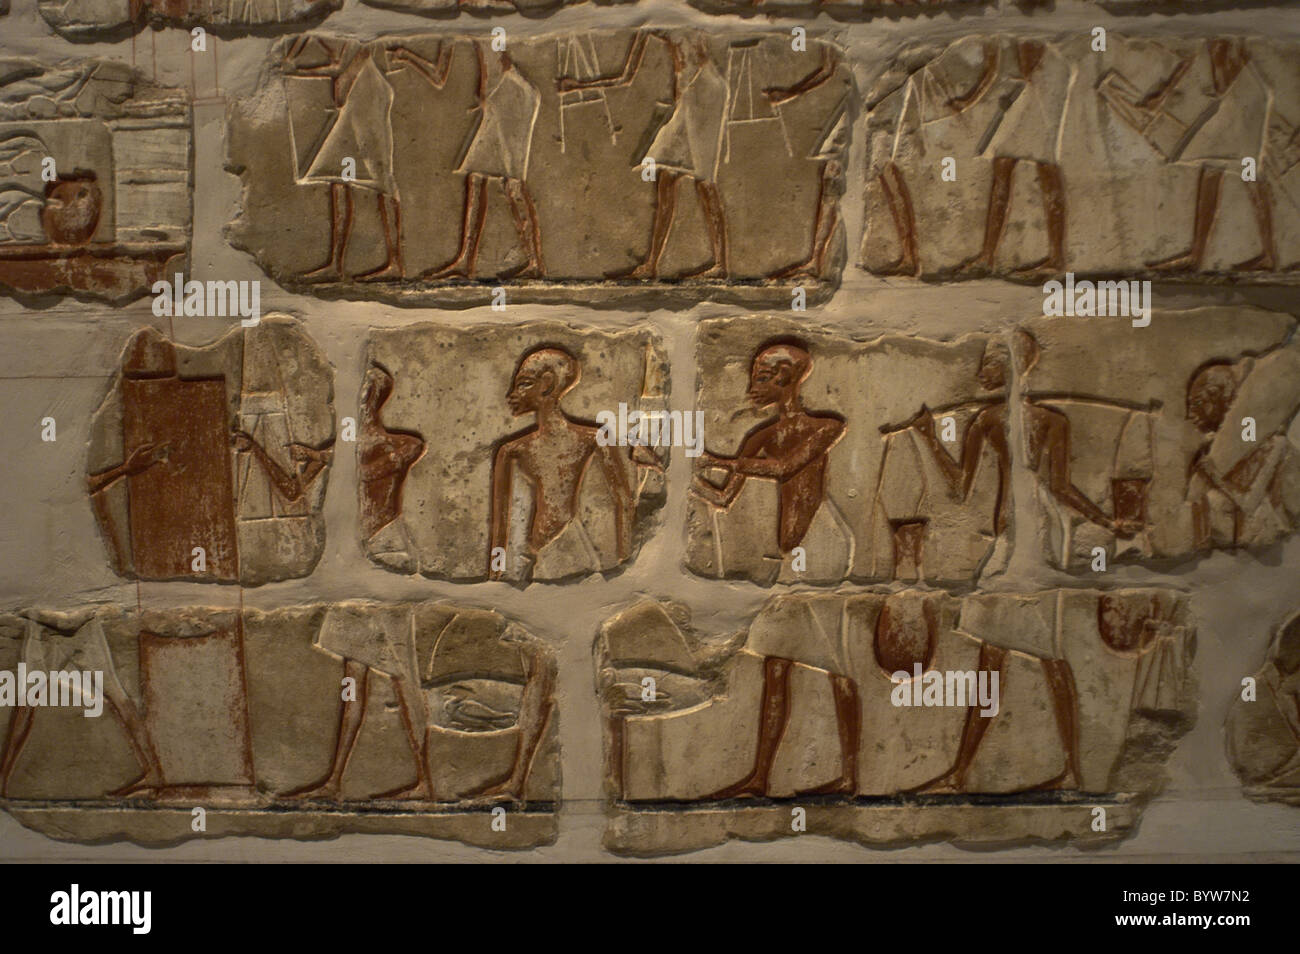 Egyptian art. Talatat walls from the temple of Amenhotep IV. Storage of goods in the temple. Egypt. - Stock Image